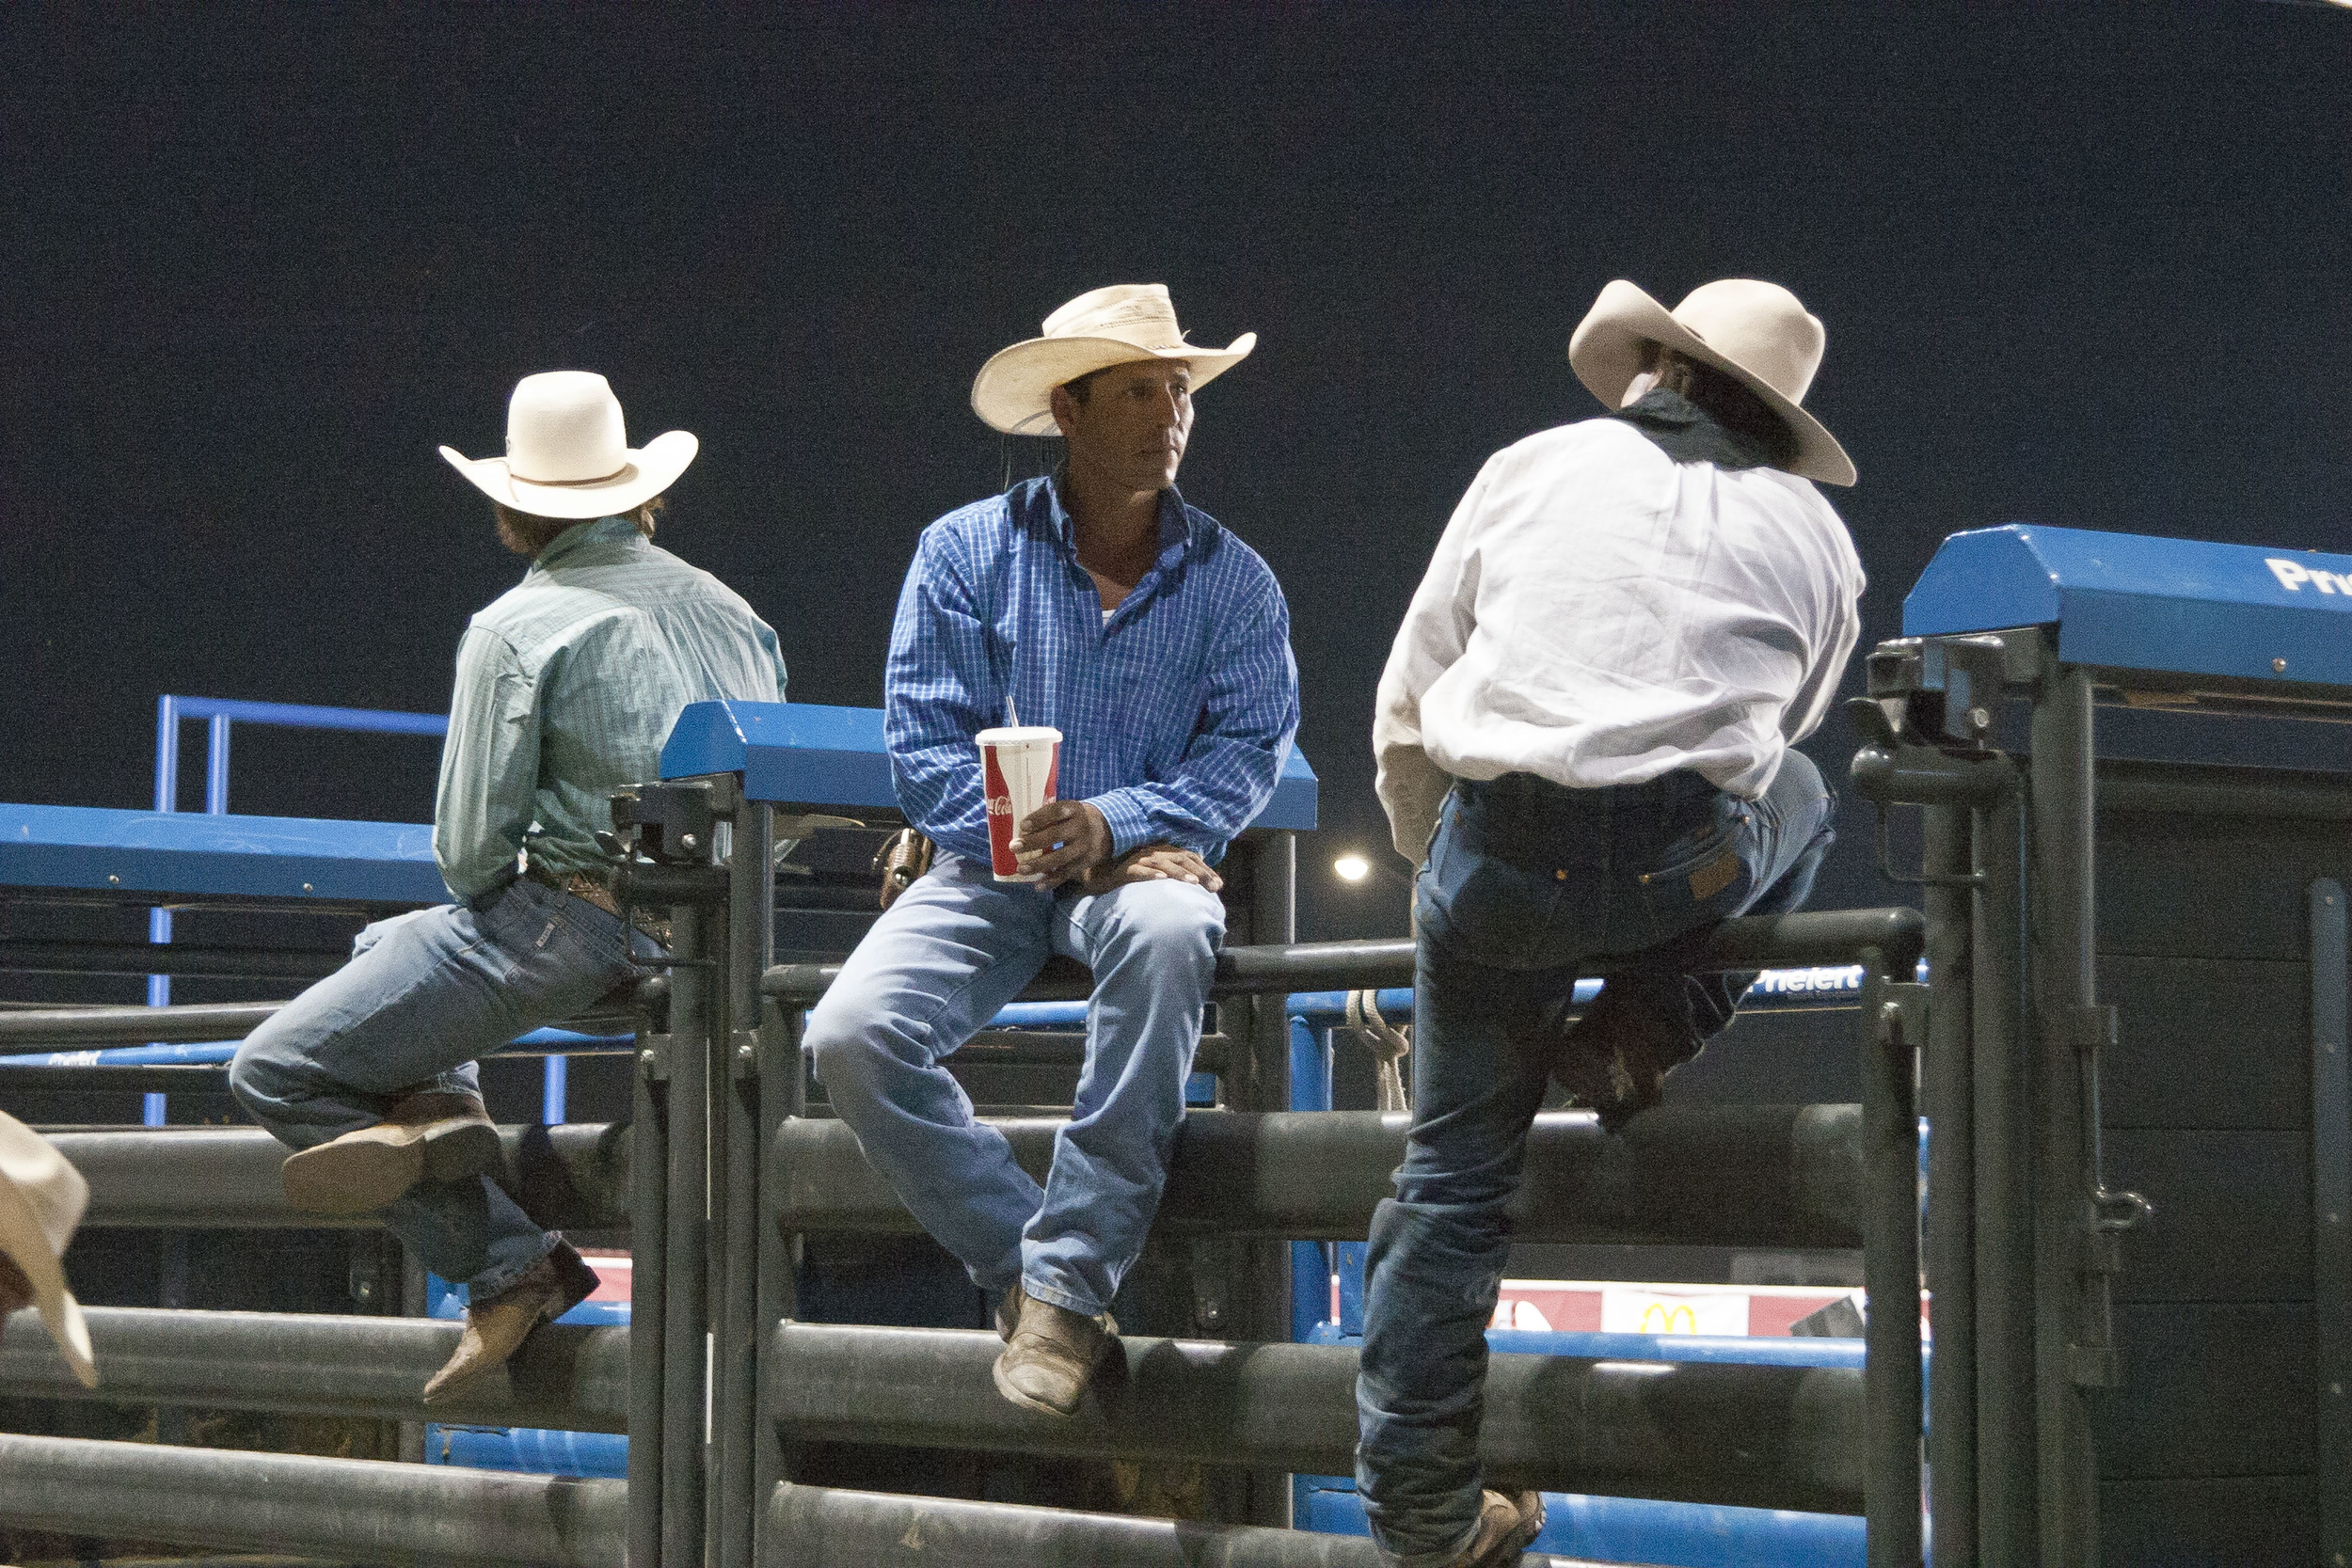 Riders converse before their events at the Cody Rodeo in Cody, Wyoming.